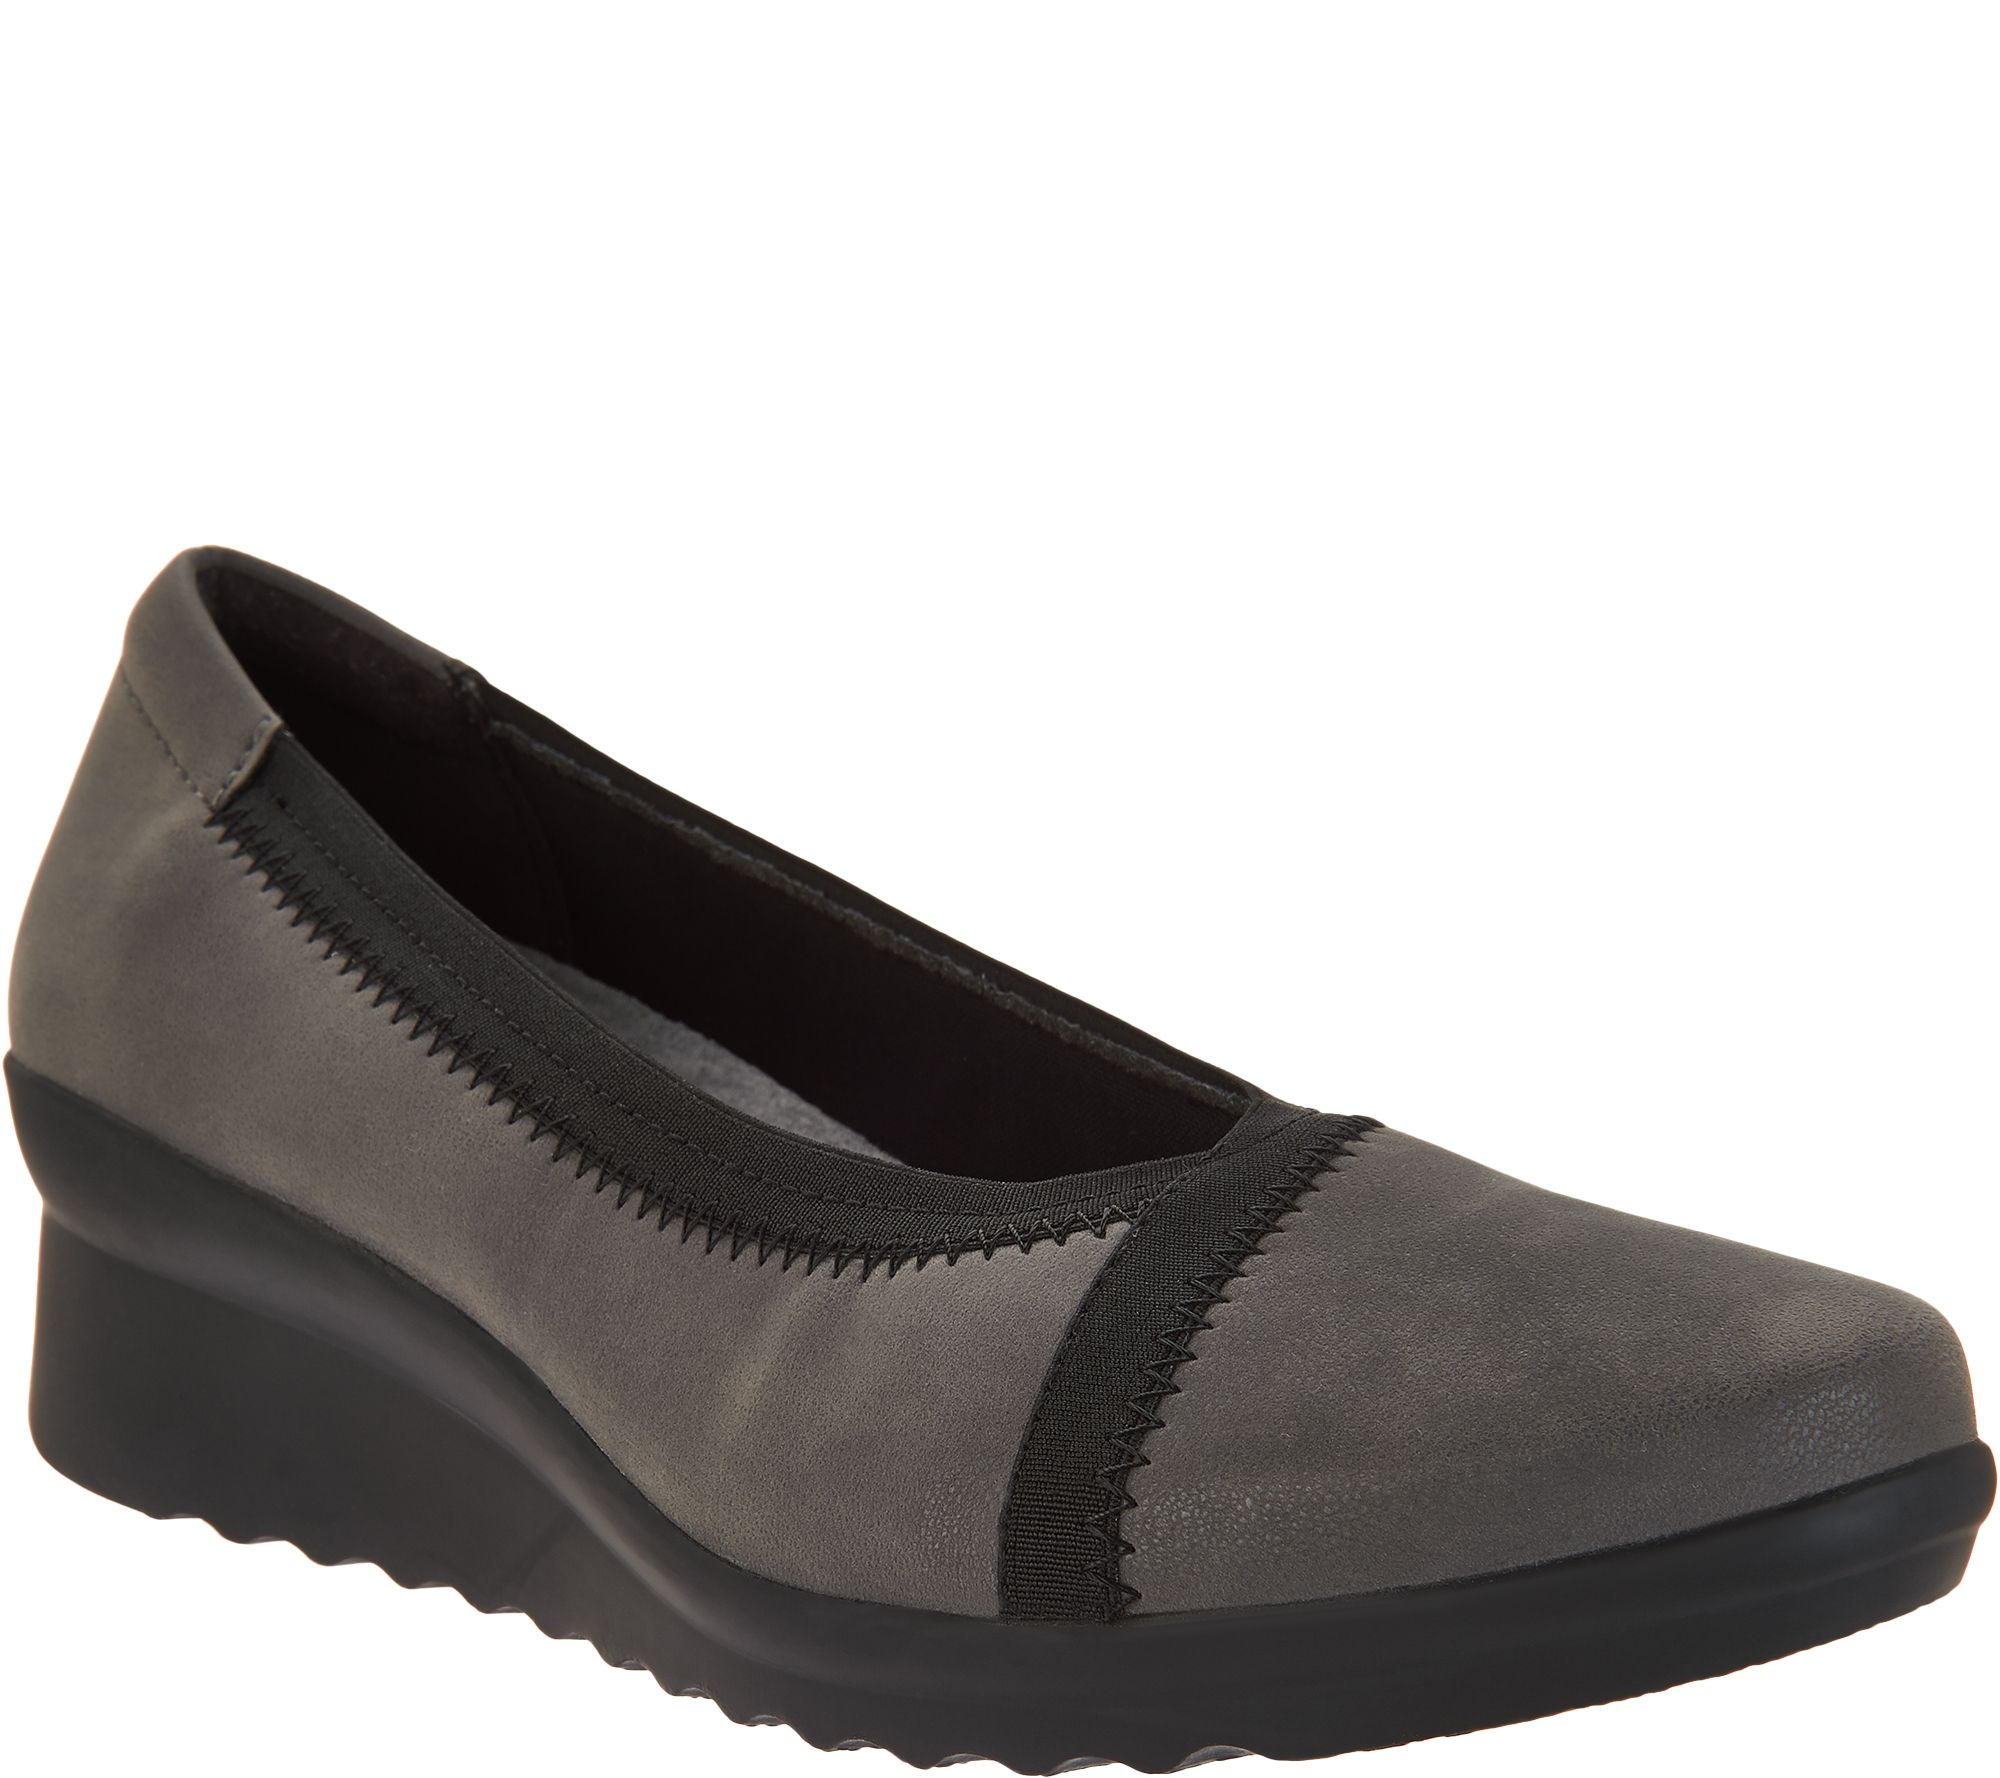 971ddf7120eb CLOUDSTEPPERS by Clarks Low Wedge Pumps - Caddell Dash - Page 1 — QVC.com